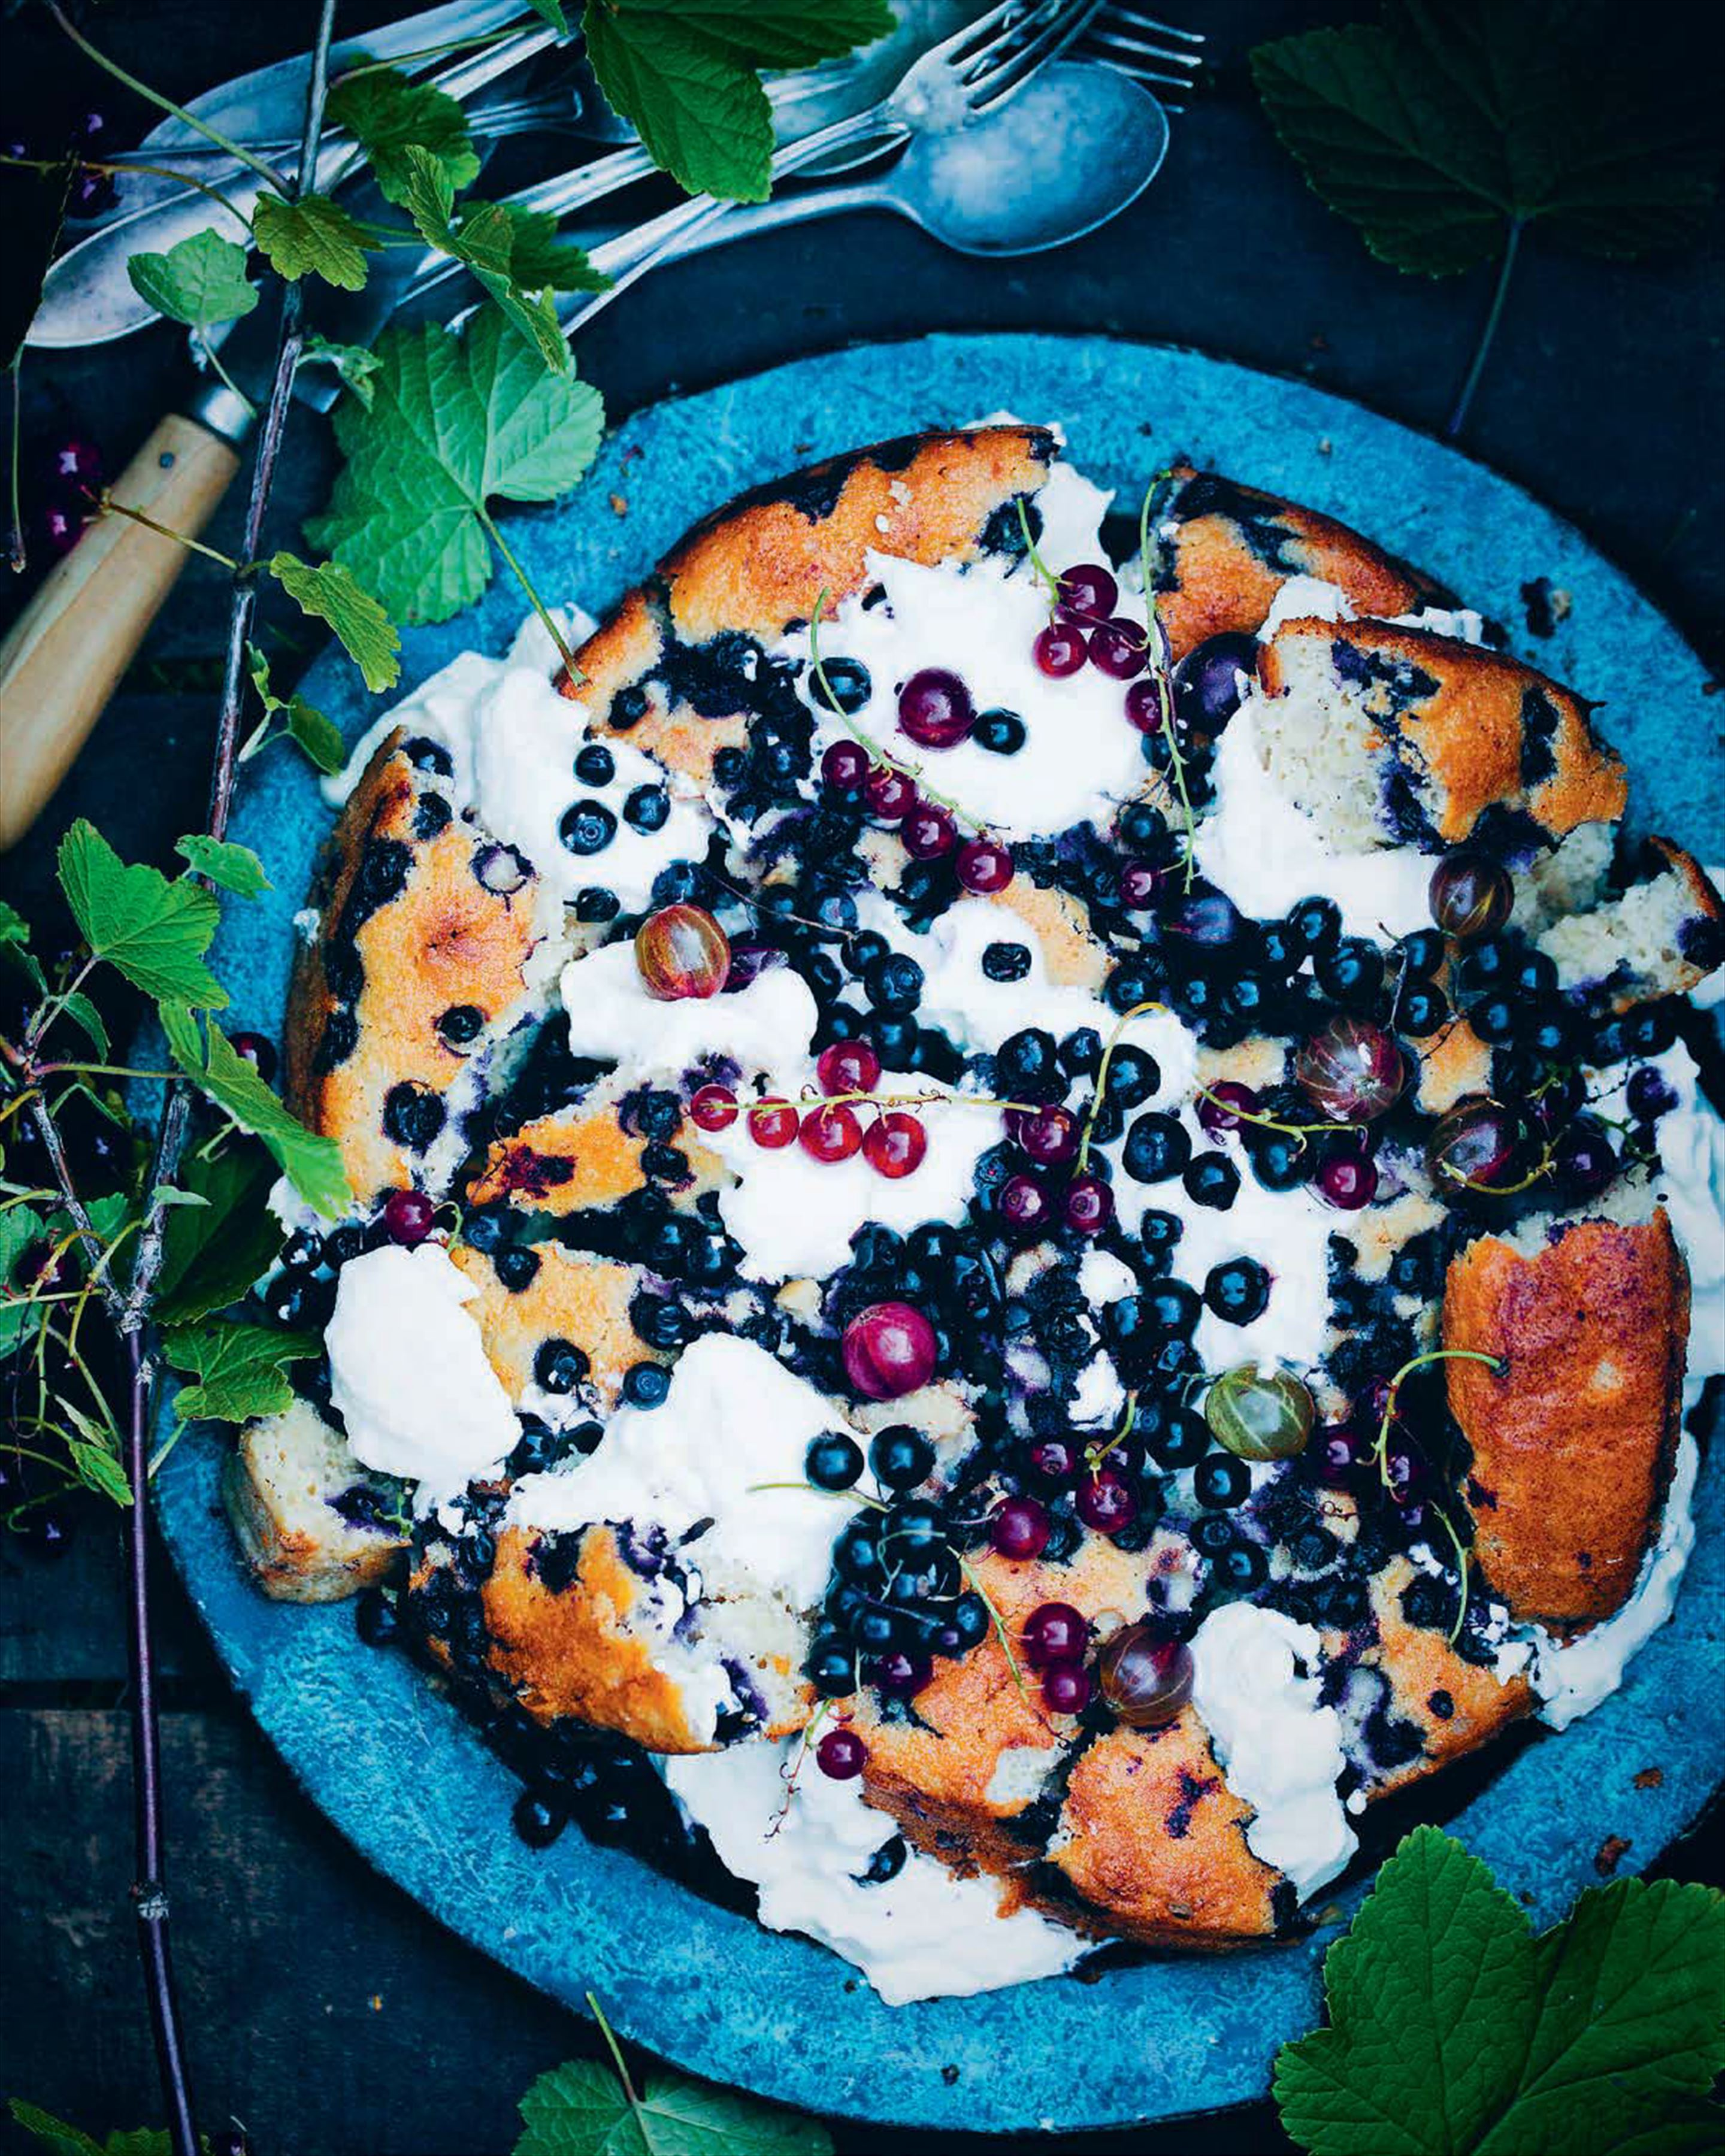 Shattered blueberry and yoghurt cake